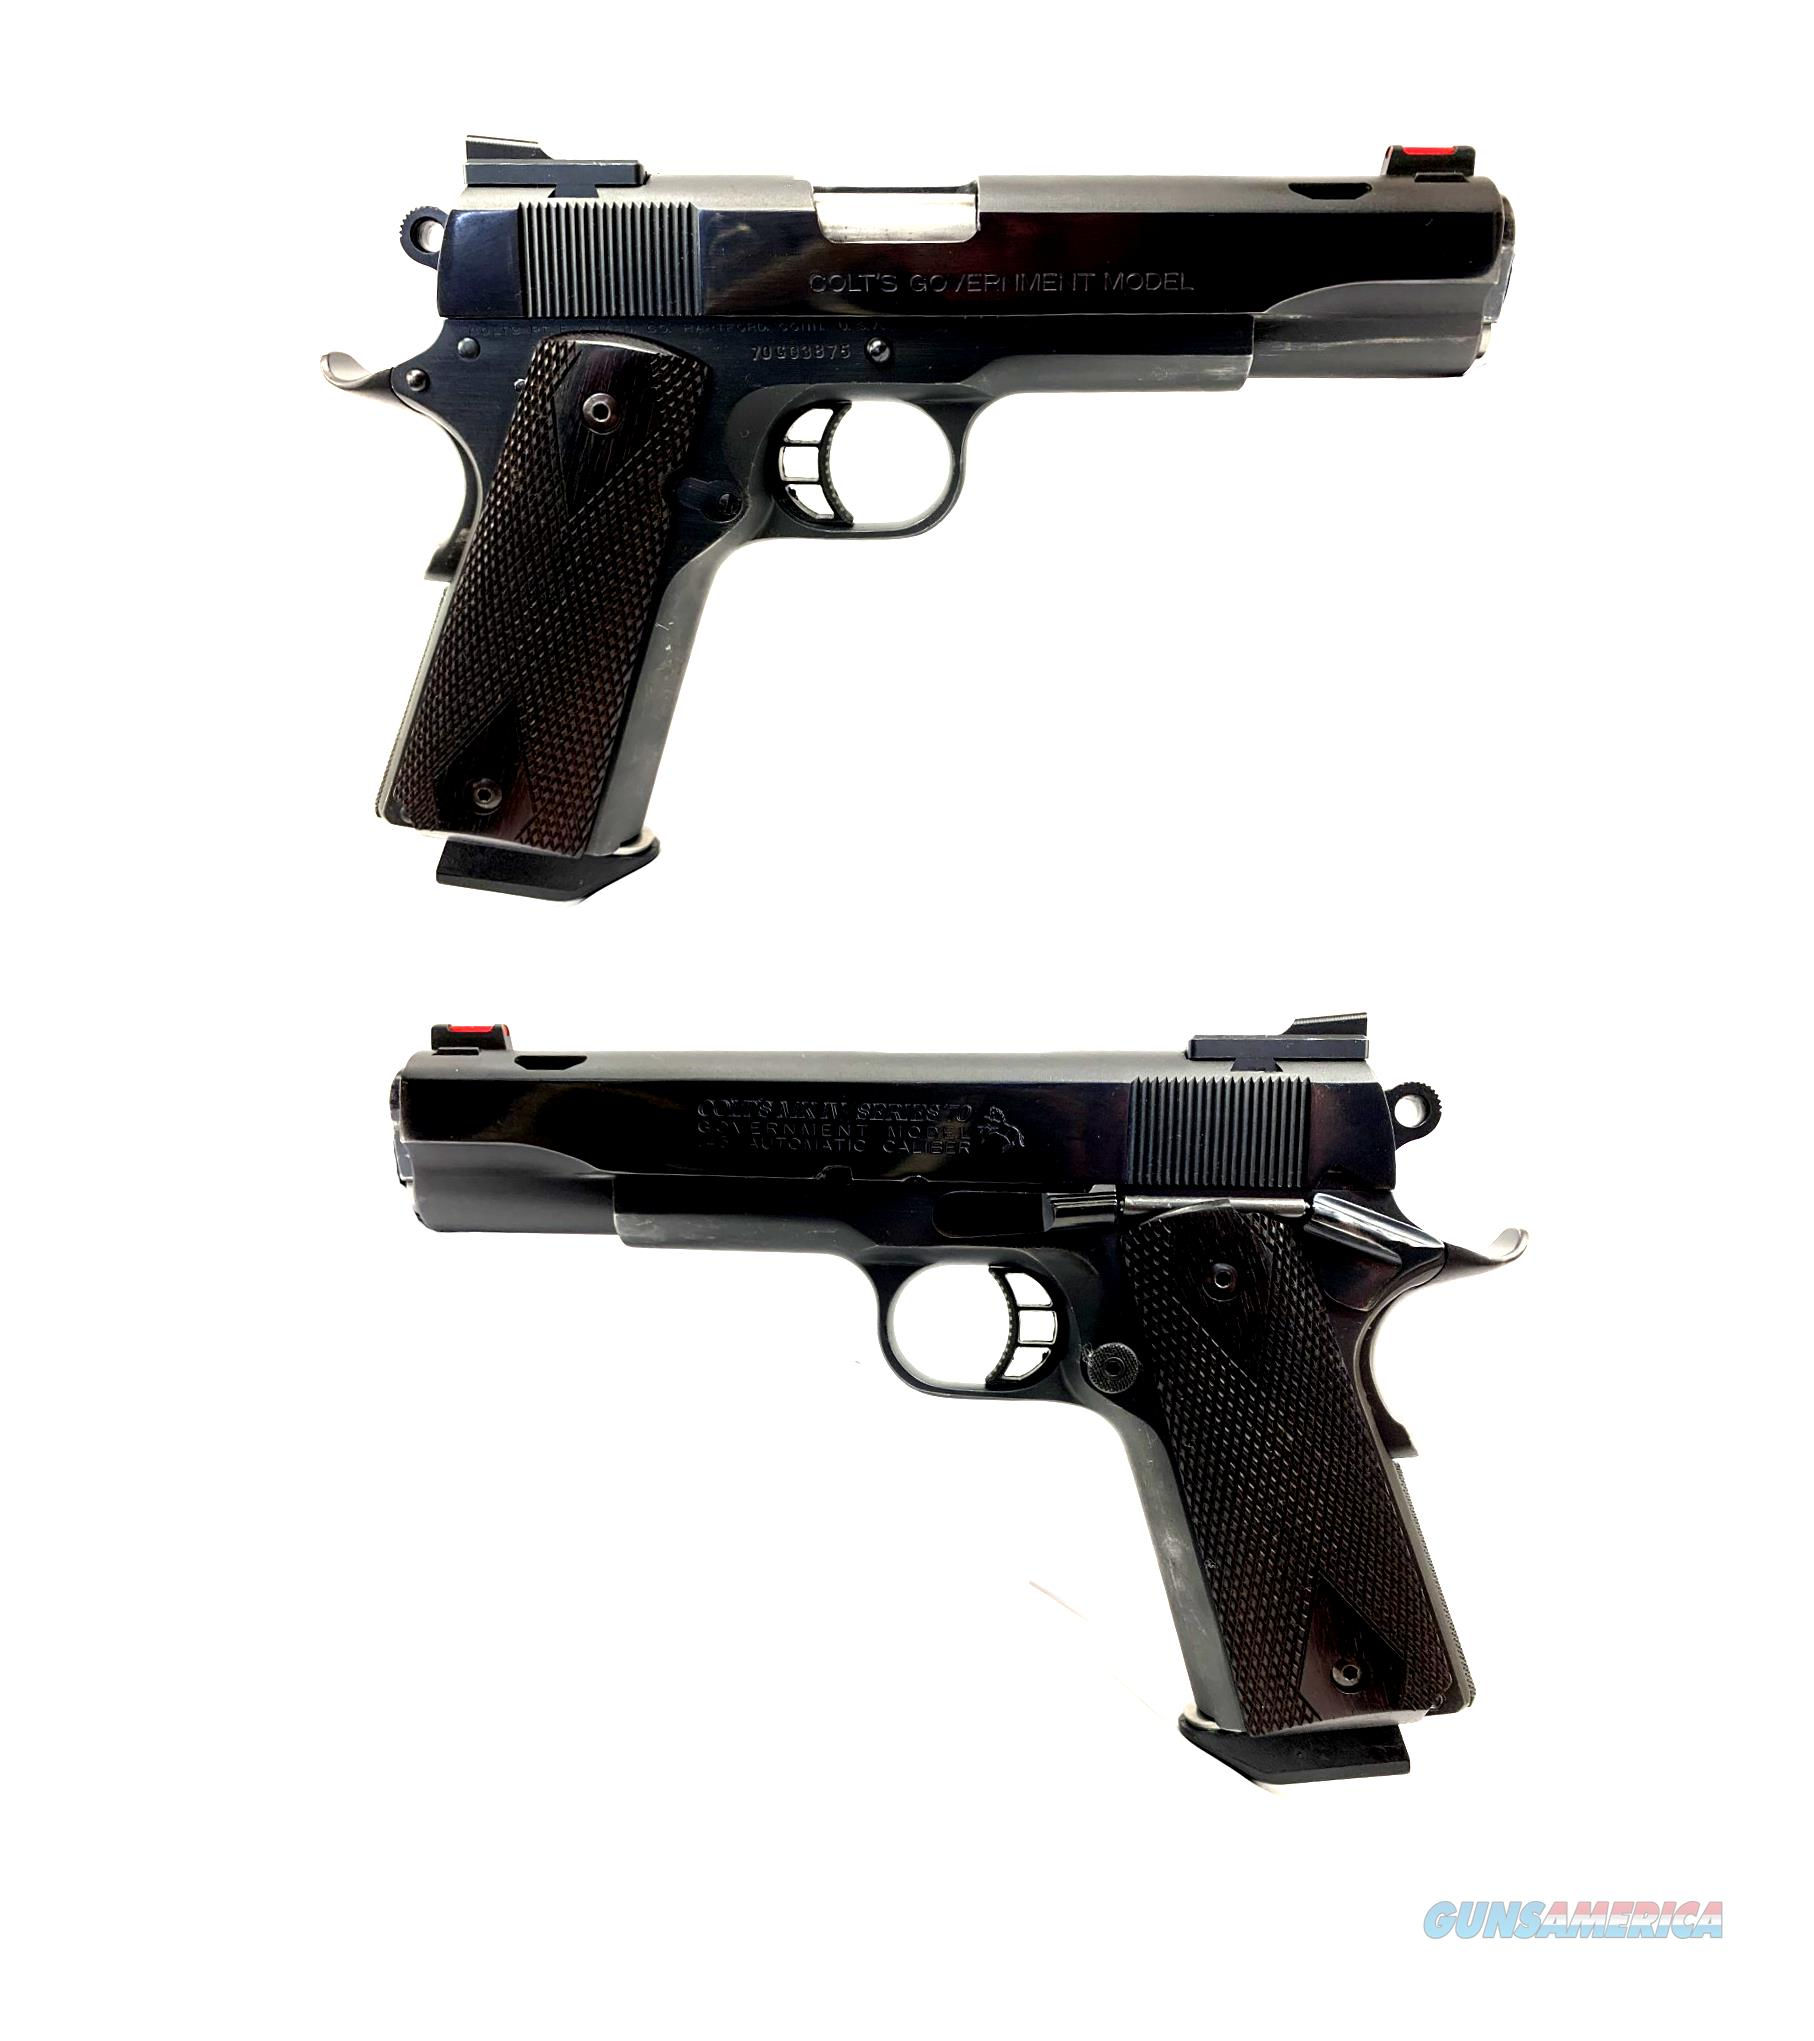 Colt Government 1911 MK IV Series 70 Semi-Automatic Pistol  Guns > Pistols > Colt Automatic Pistols (1911 & Var)